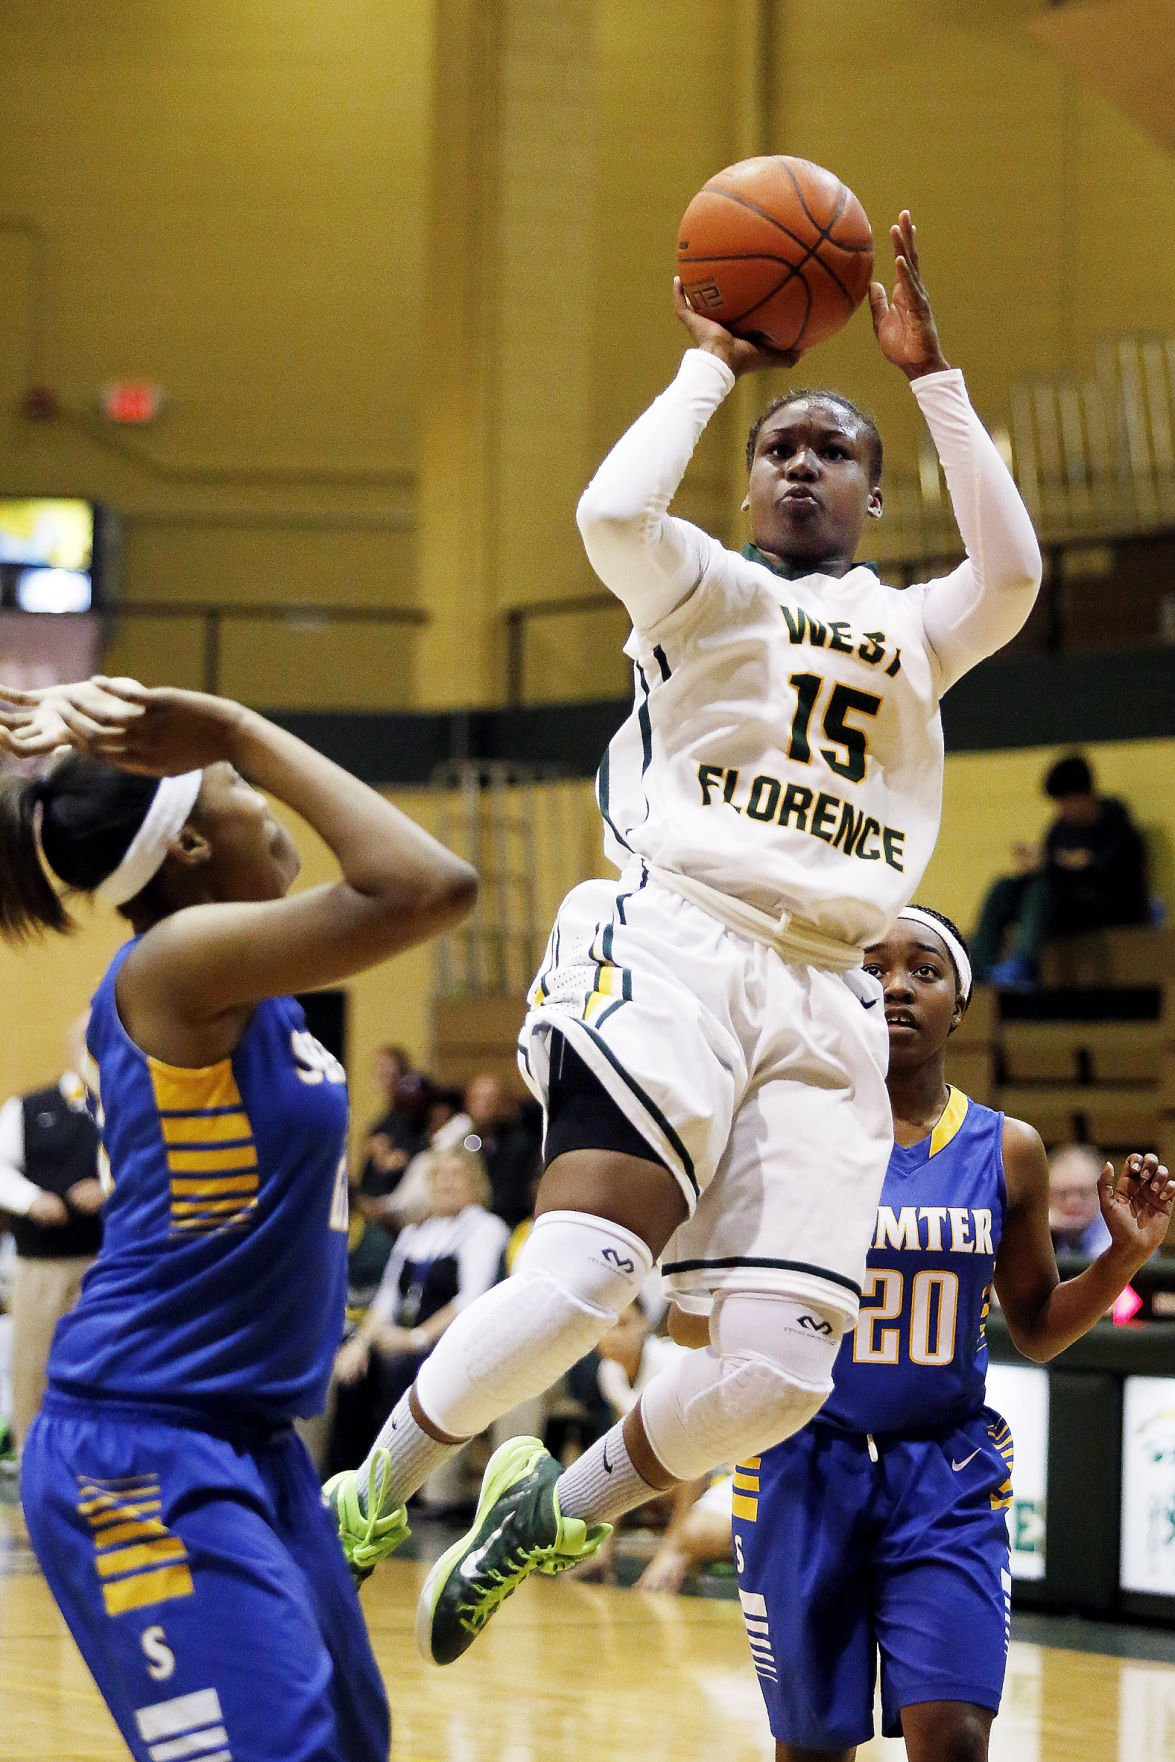 Sumter handles West Florence girls in matchup of top-ranked teams